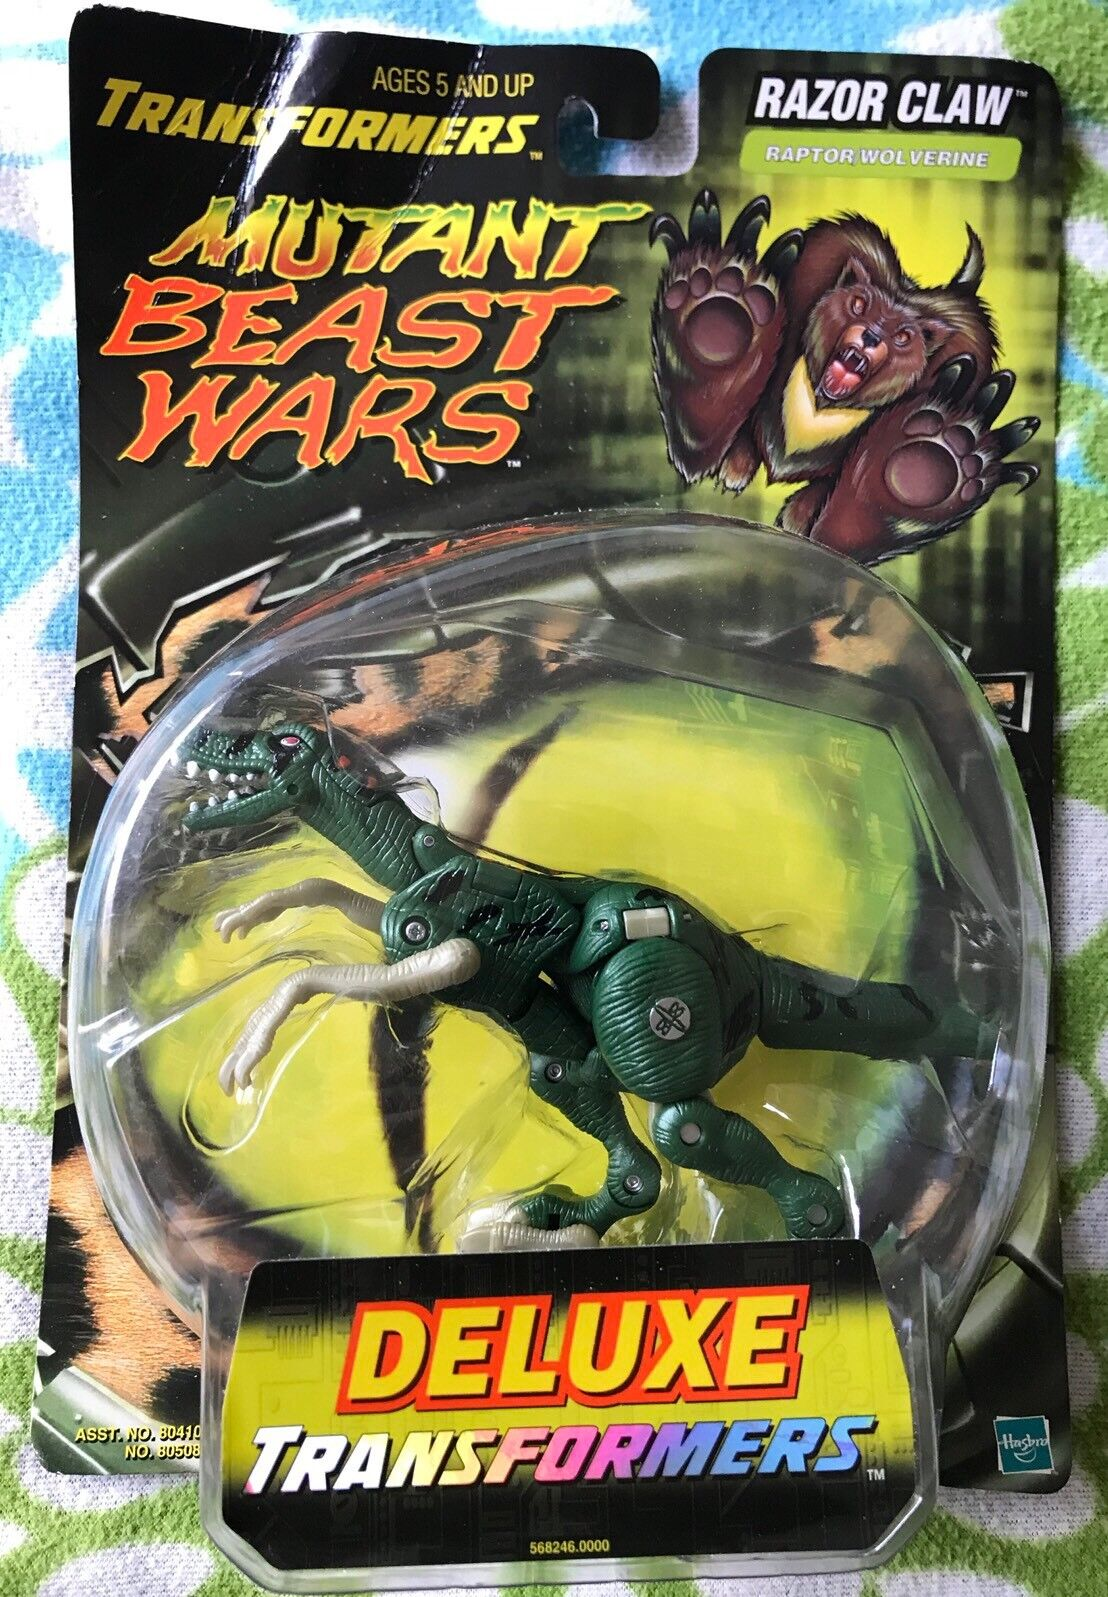 Transformers BEAST WARS MUTANT RAZOR CLAW Deluxe Class 2000 New Sealed Rare